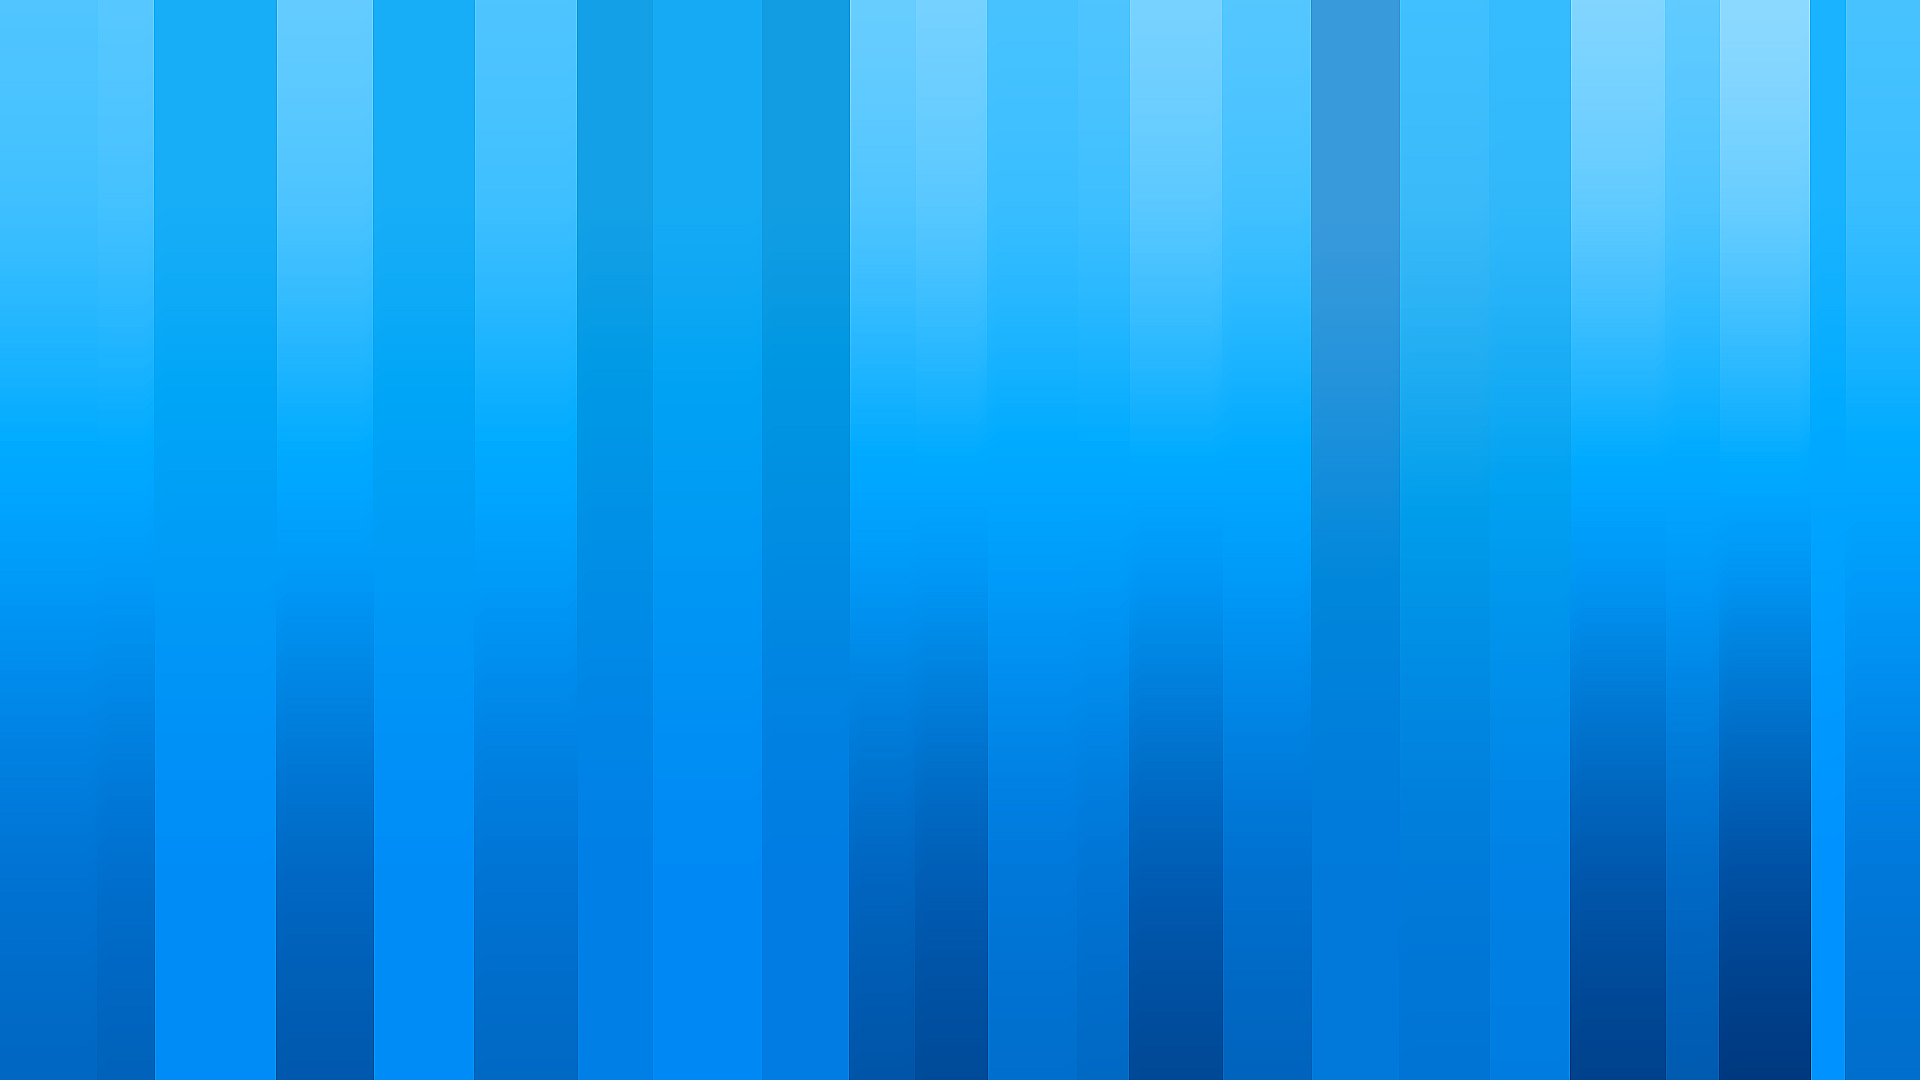 blue wallpaper 46783